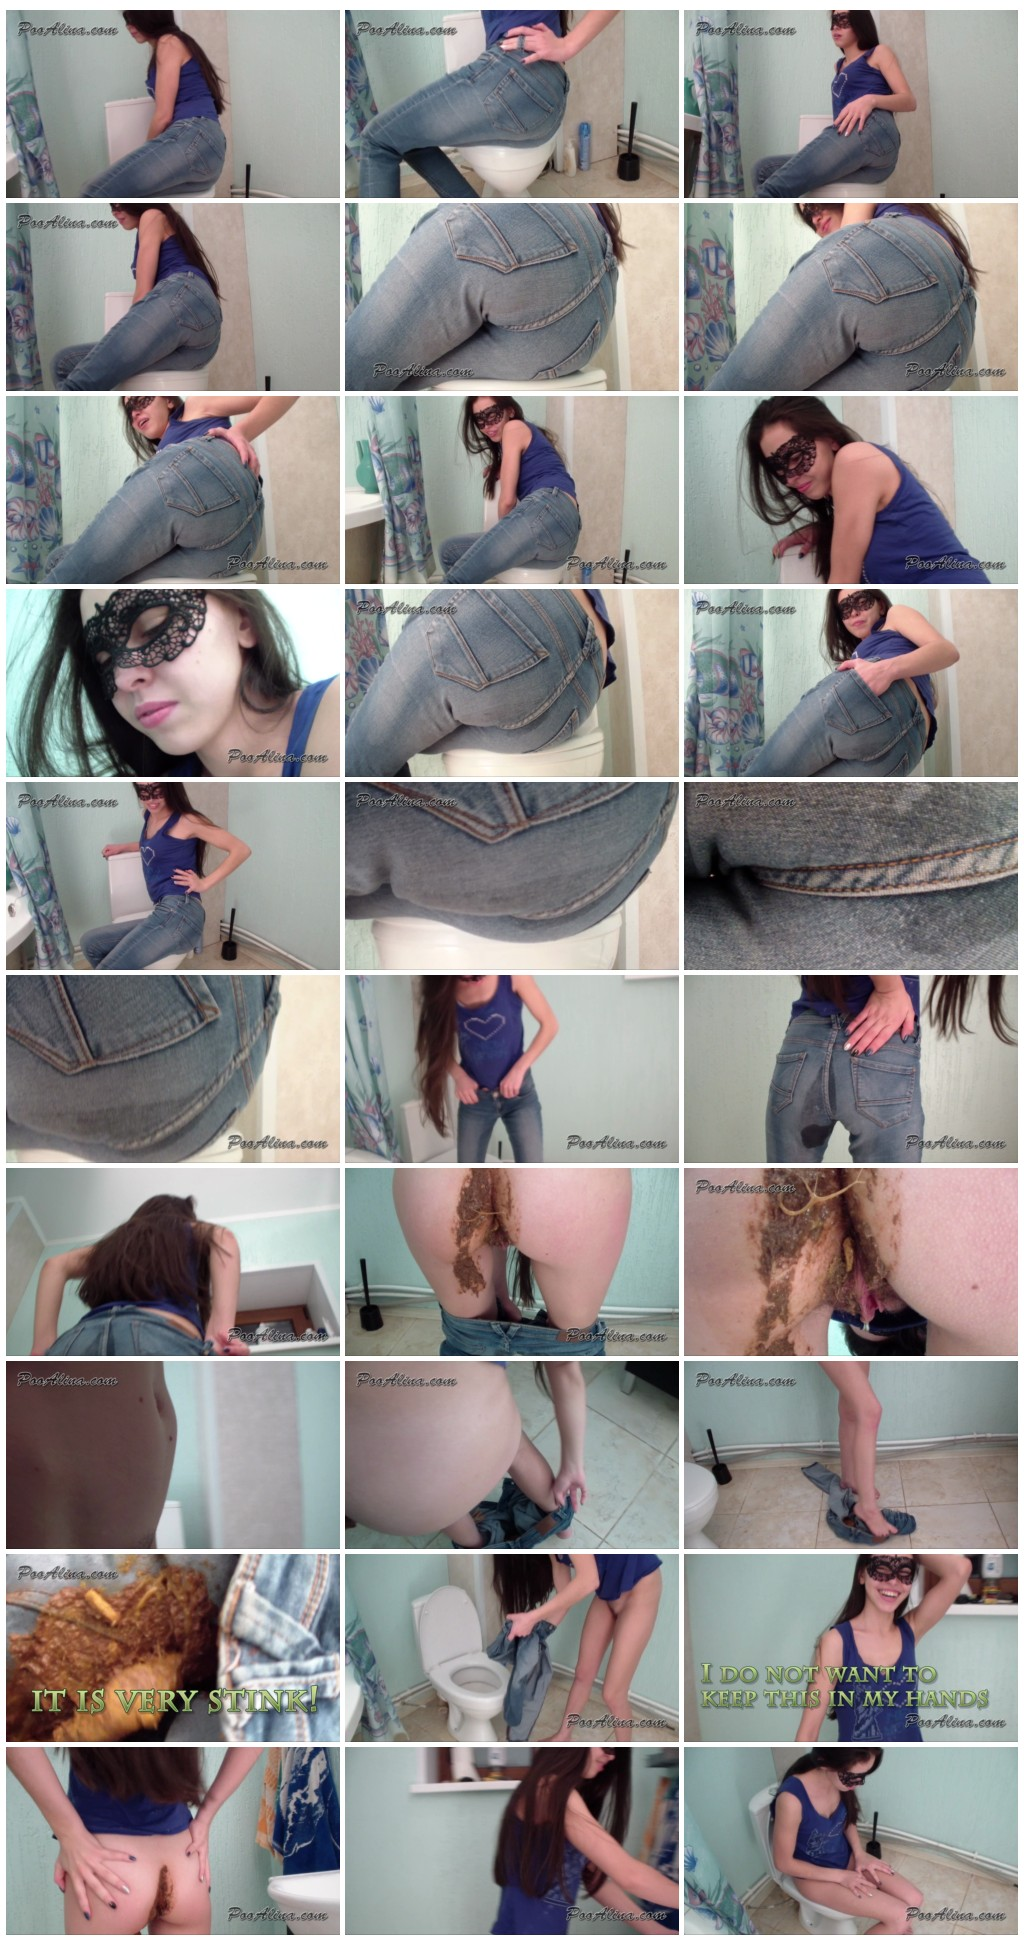 Alina pooping and fart in jeans after a fish with beer Scat solo shit defecation Big ShitMasturbation Dirty AssPissJeans in shit thumb - Alina pooping and fart in jeans after a fish with beer [Scat solo, shit, defecation,Masturbation ,Piss,Jeans in shit]